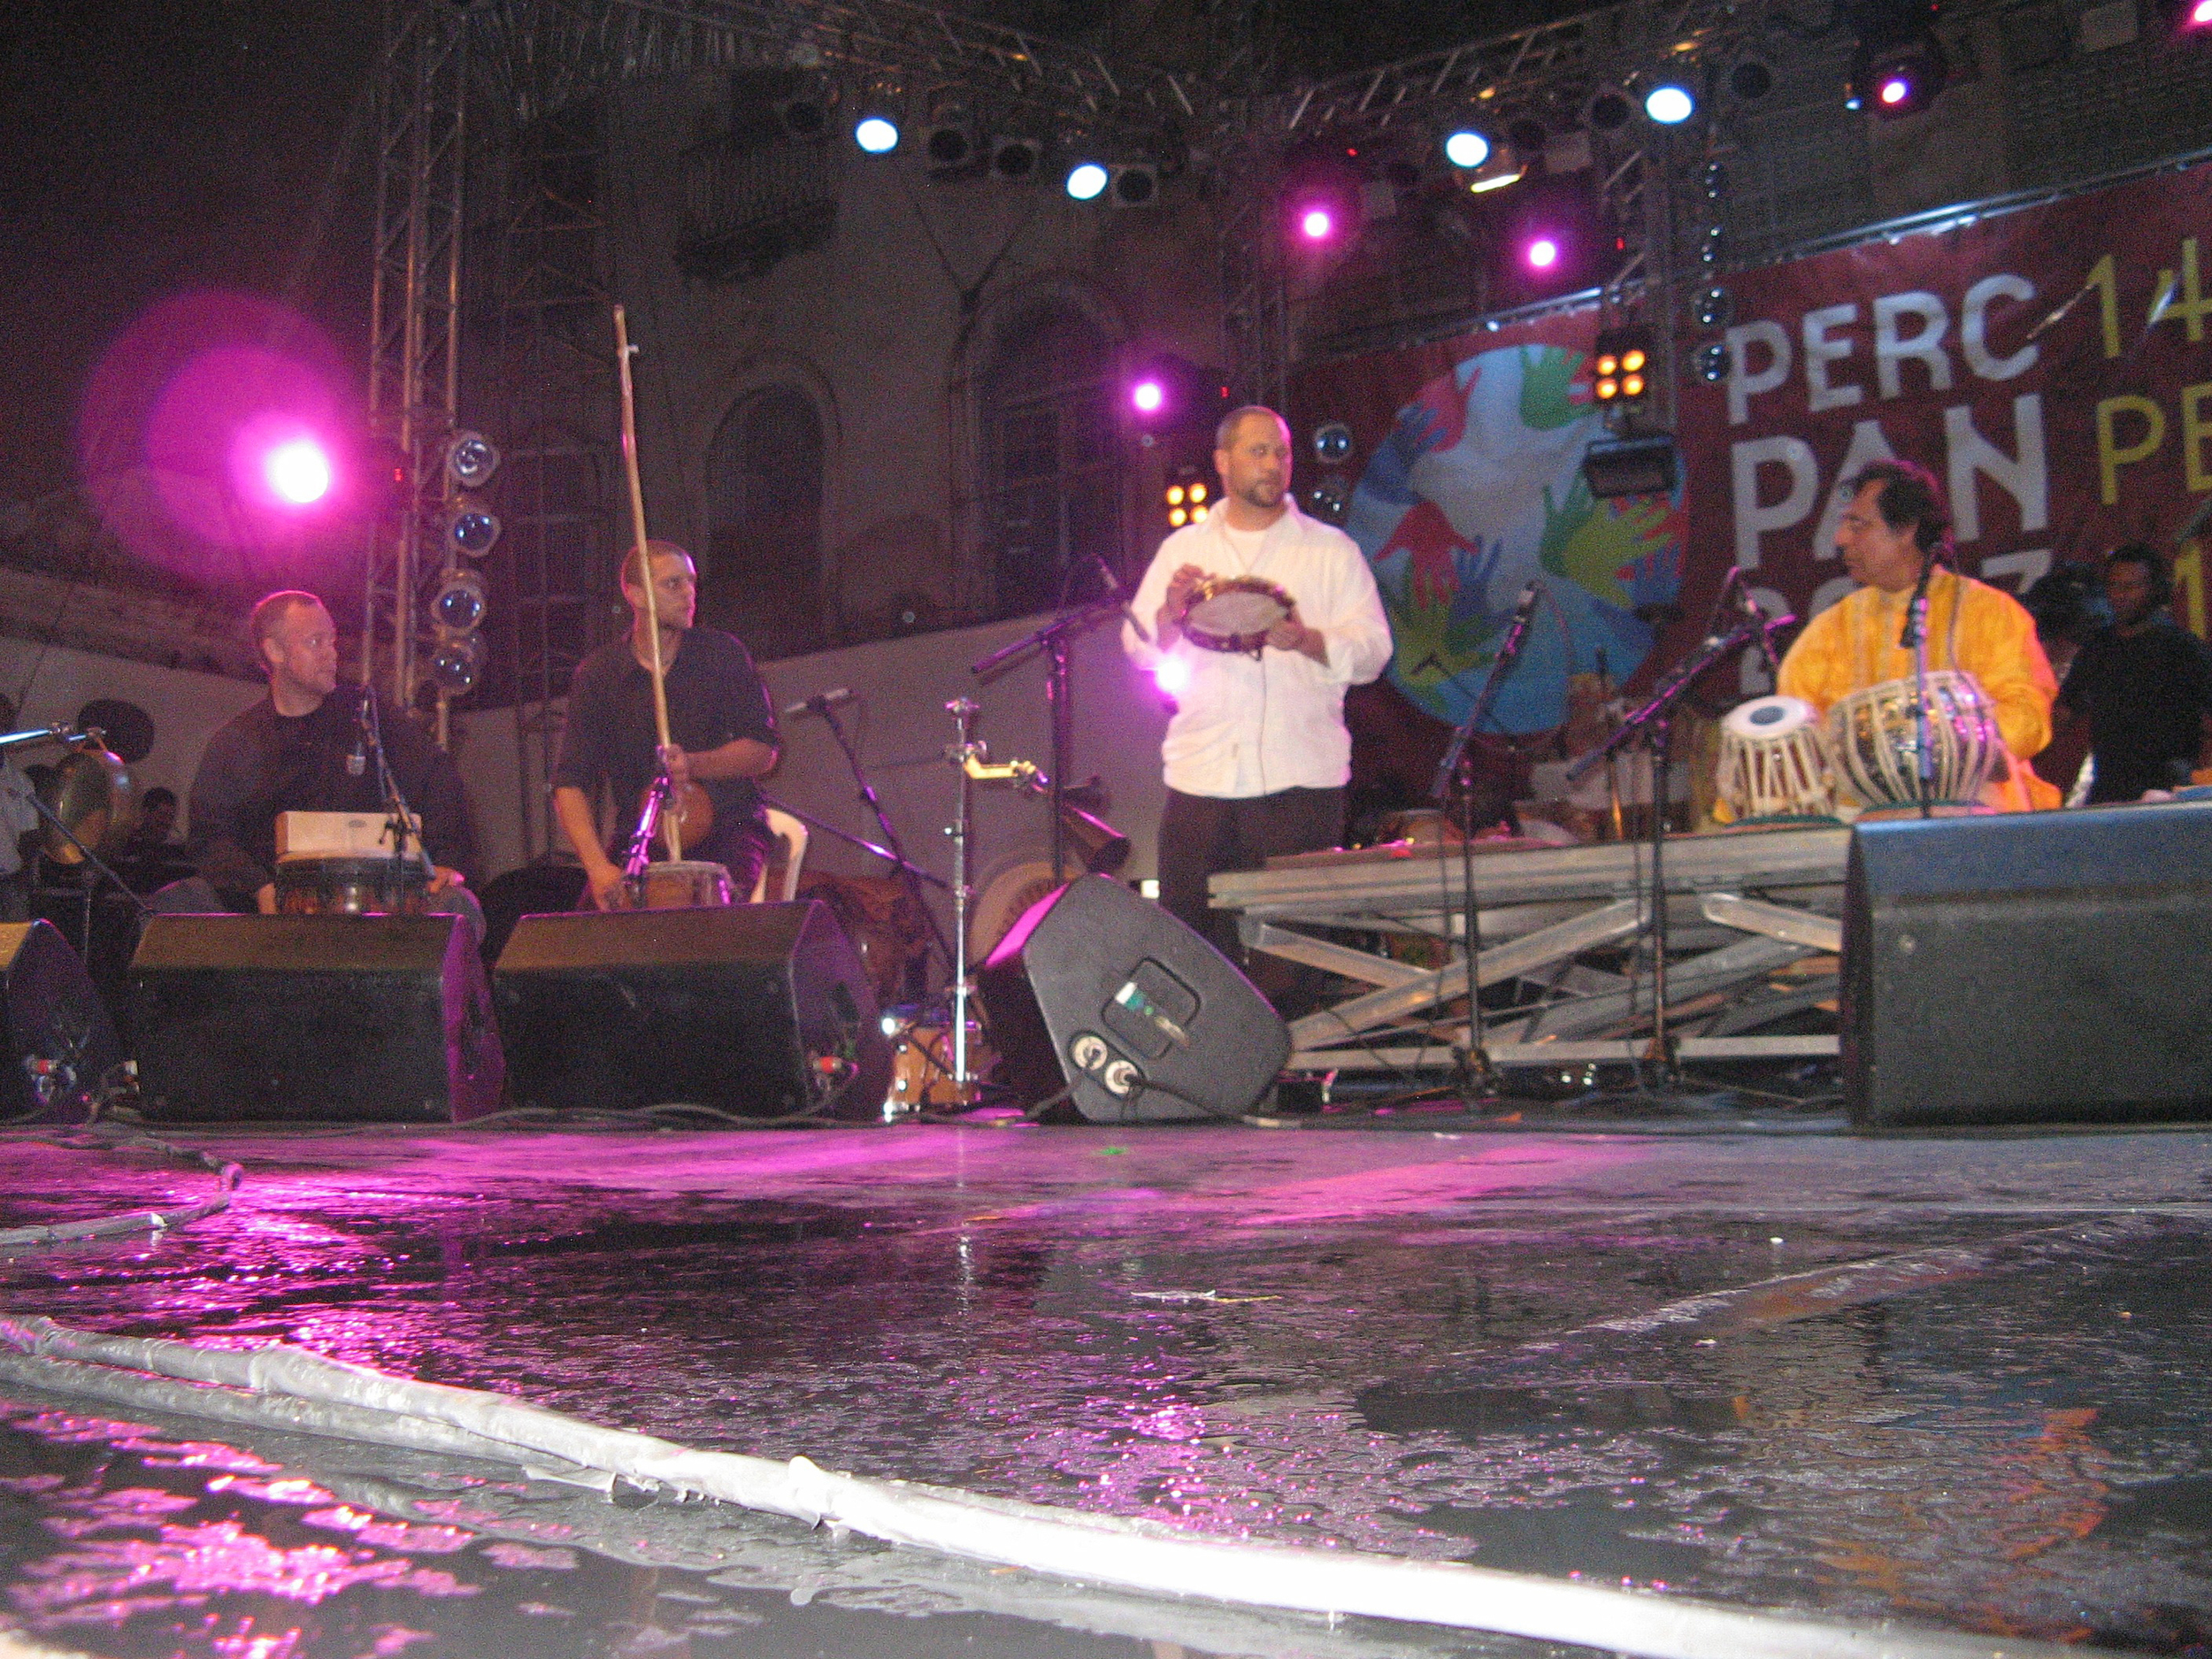 Austin Wrinkle, Andrew Grueschow, Randy Gloss, Swapan Chaudhuri in Salvador Bahia at PercPan 14 (5/25/07)